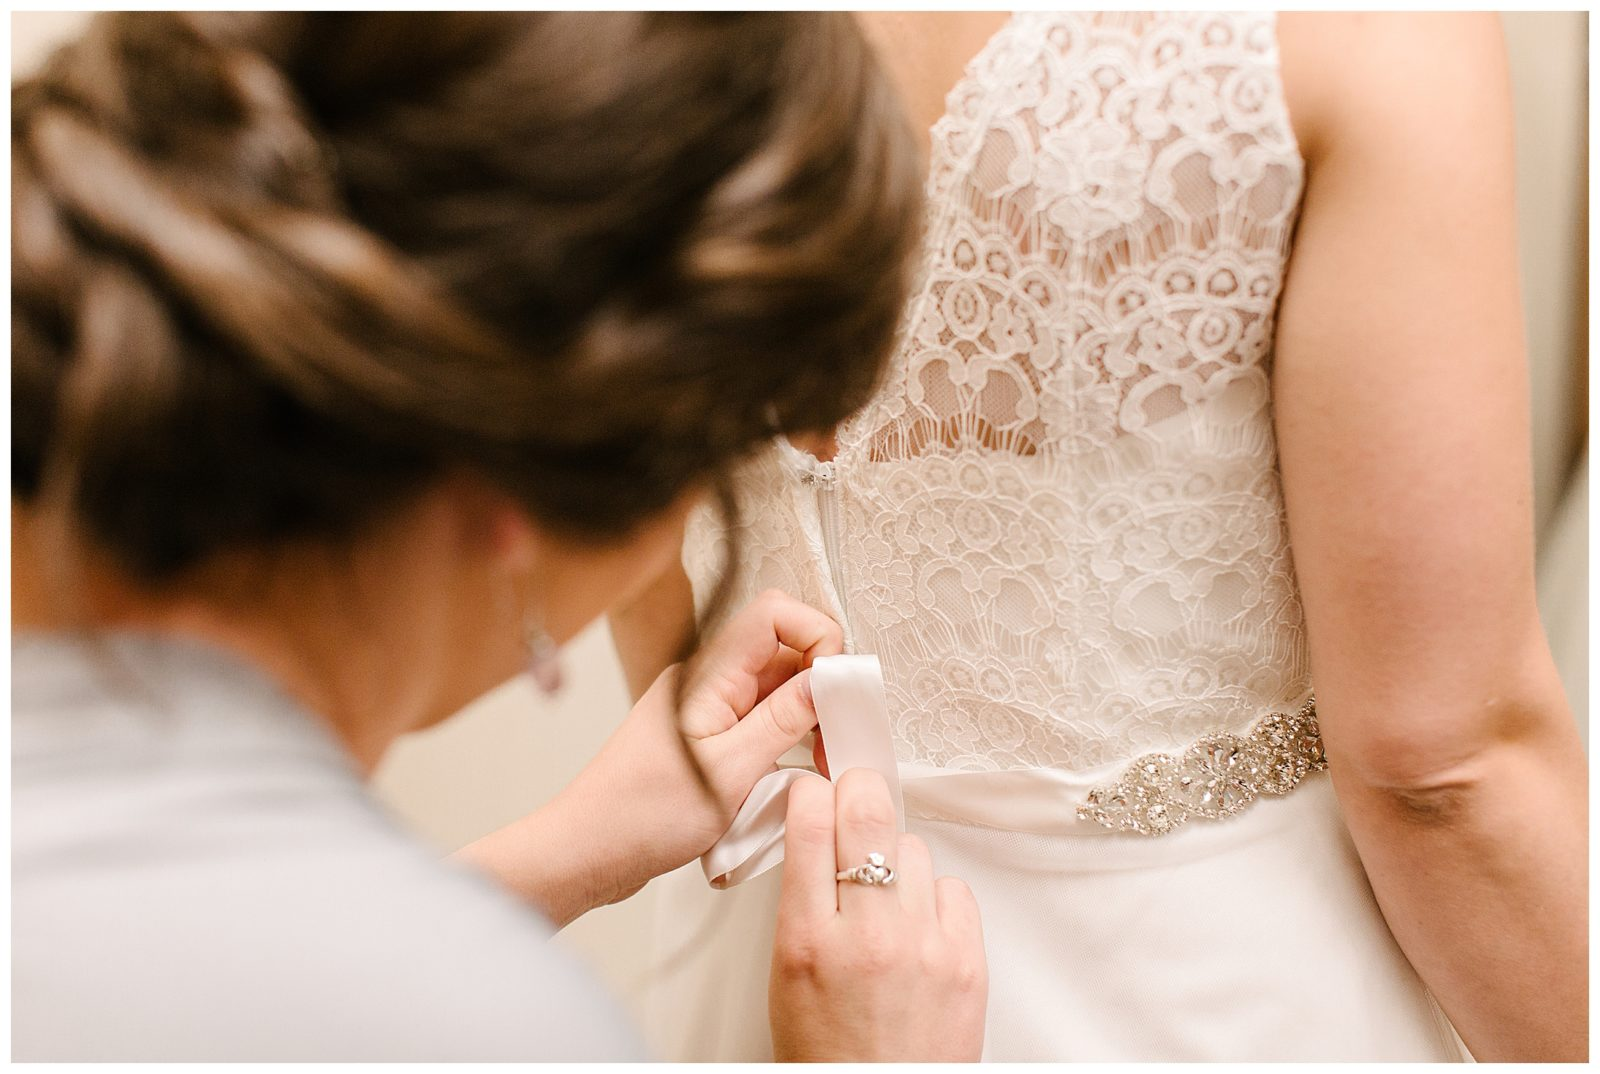 Silverwood Park wedding | May 4th wedding | Tigerlily Photography | Sixpence Events and Planning day of coordinating | mom helping bride | lace strap dress